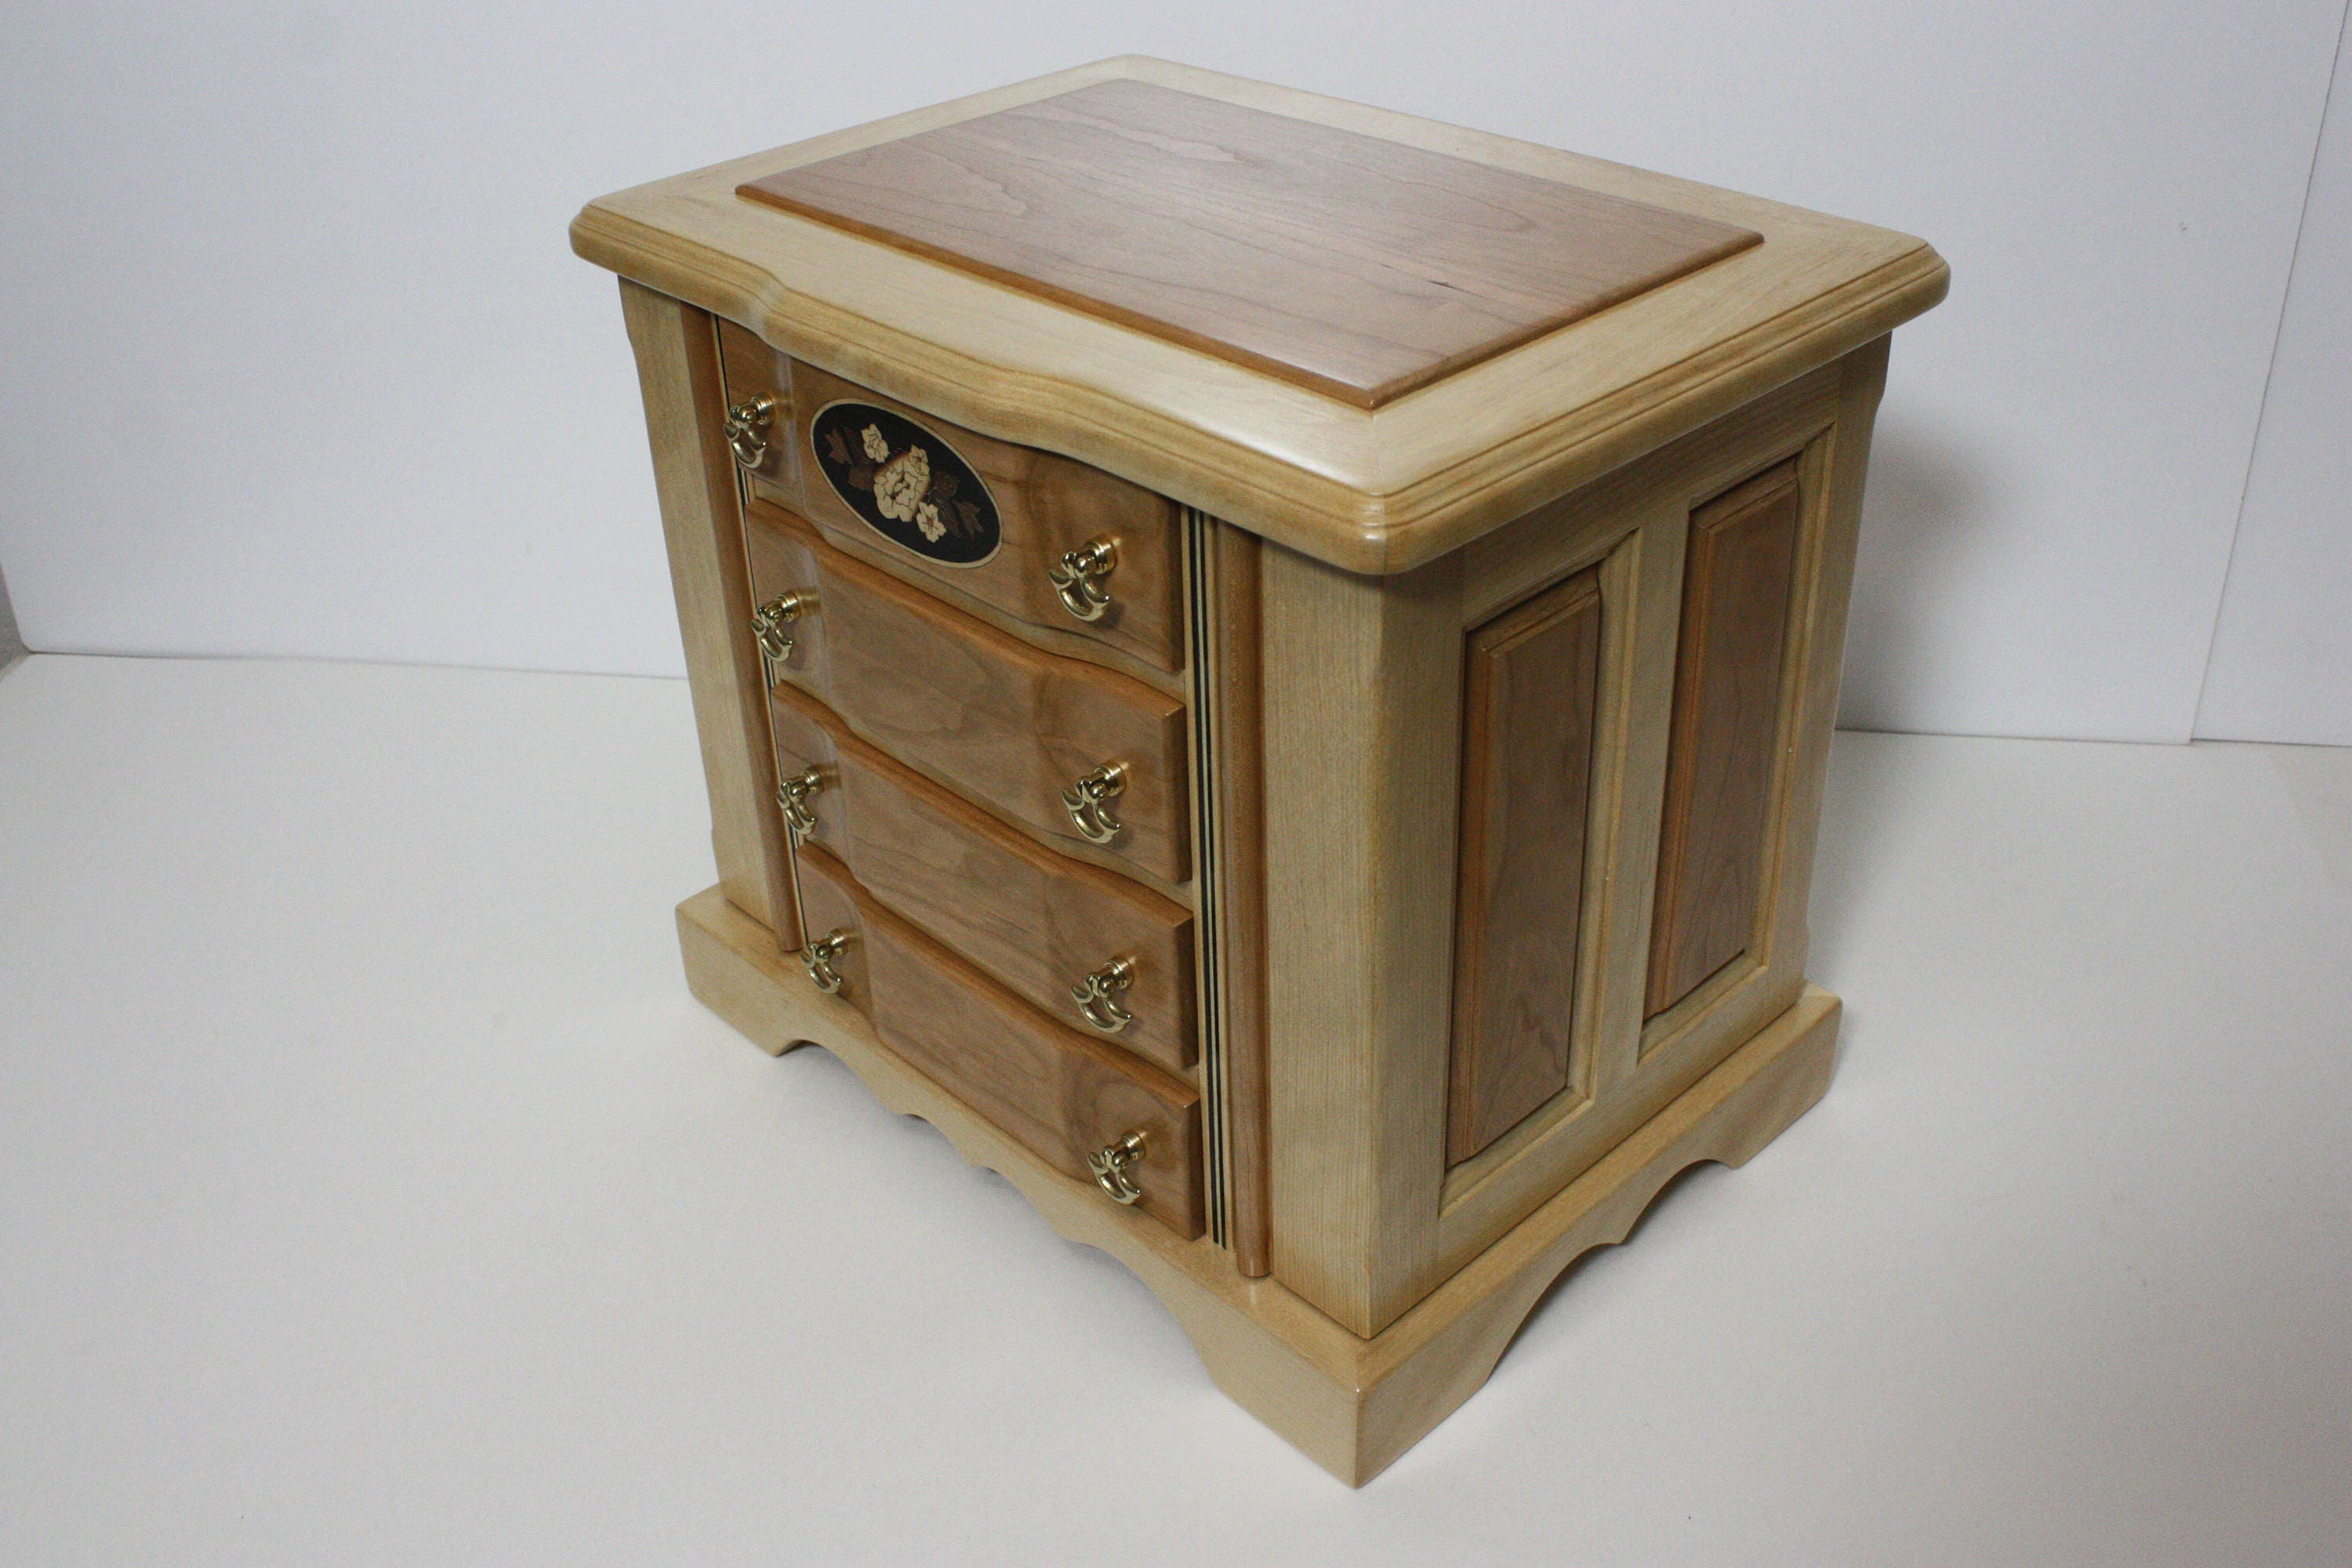 Large Handmade 4 Drawer Birch and Cherry Wood Jewelry Box with Swing